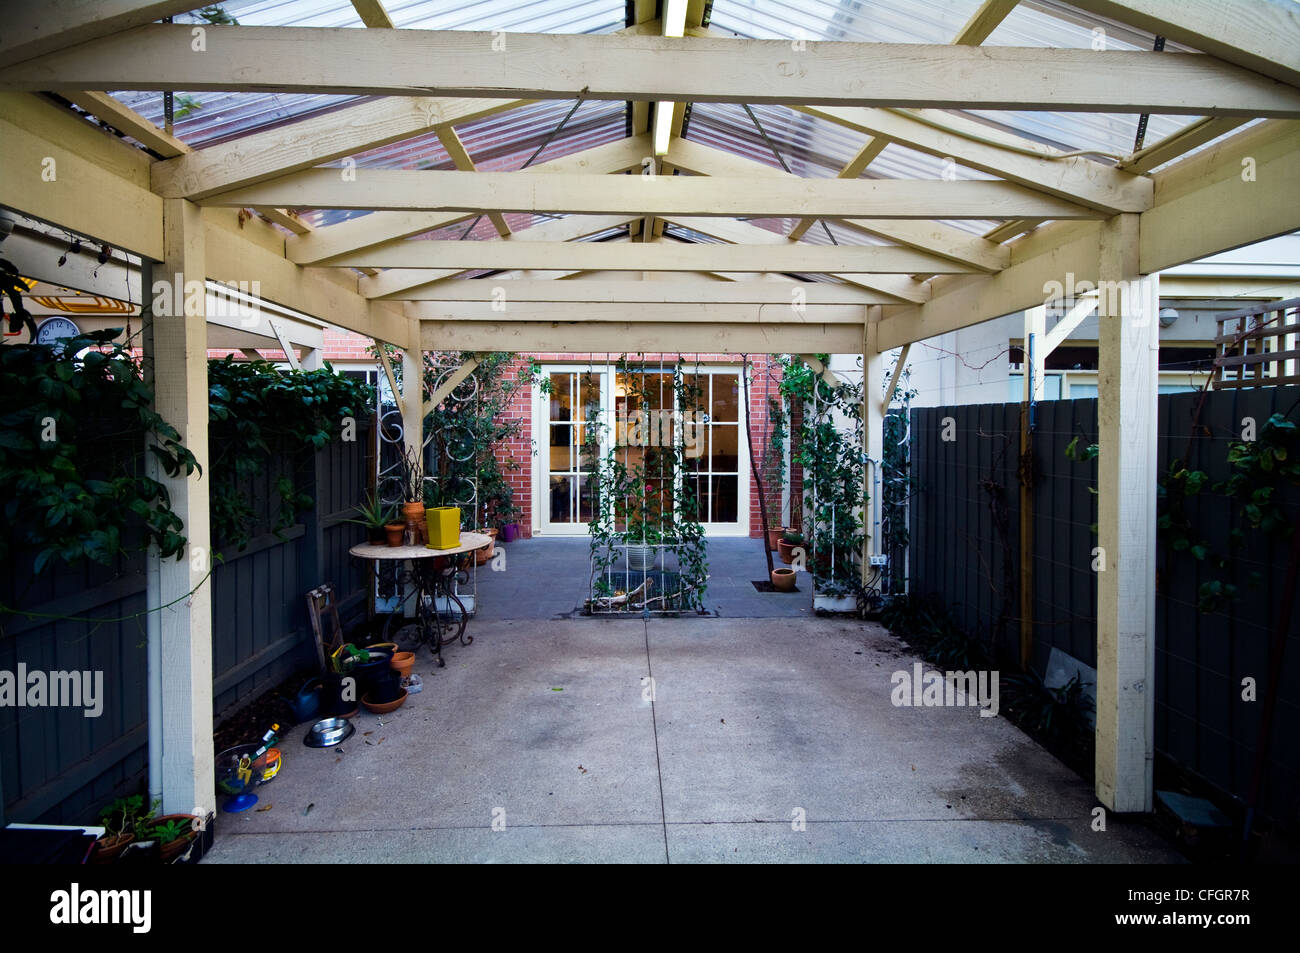 A covered car park and entertainment area at the rear of a townhouse. - Stock Image